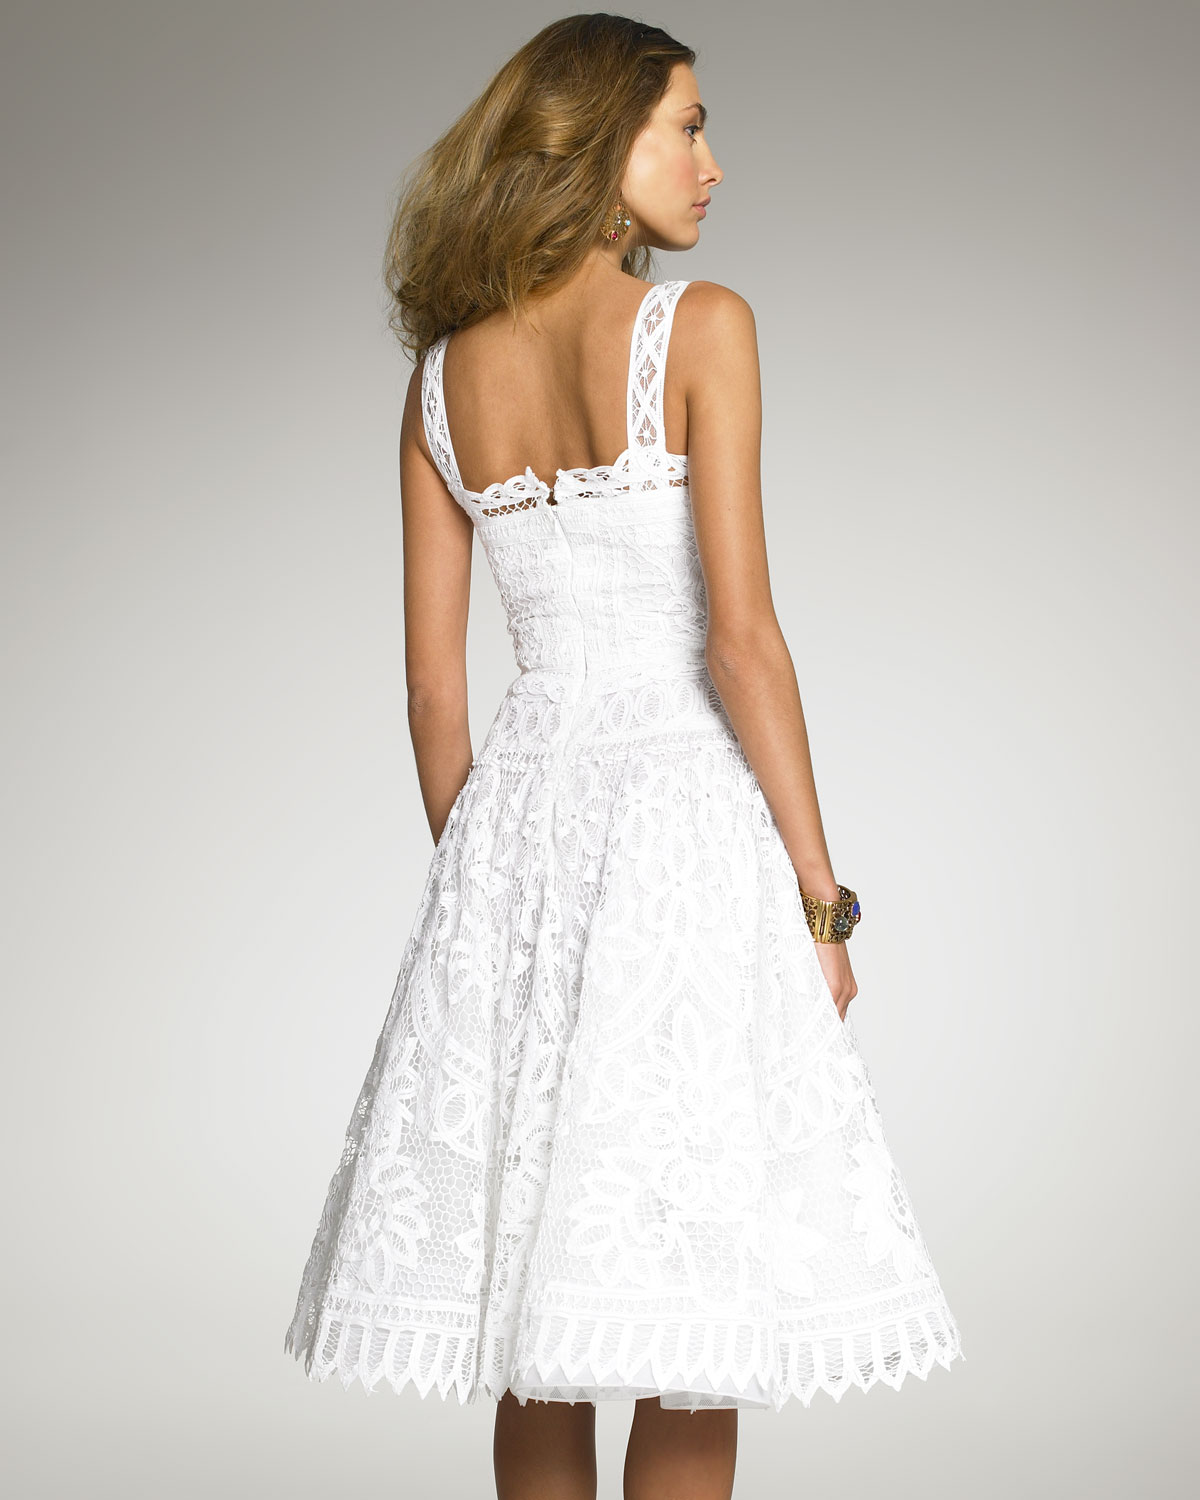 oscar de la renta battenberg lace dress in white lyst